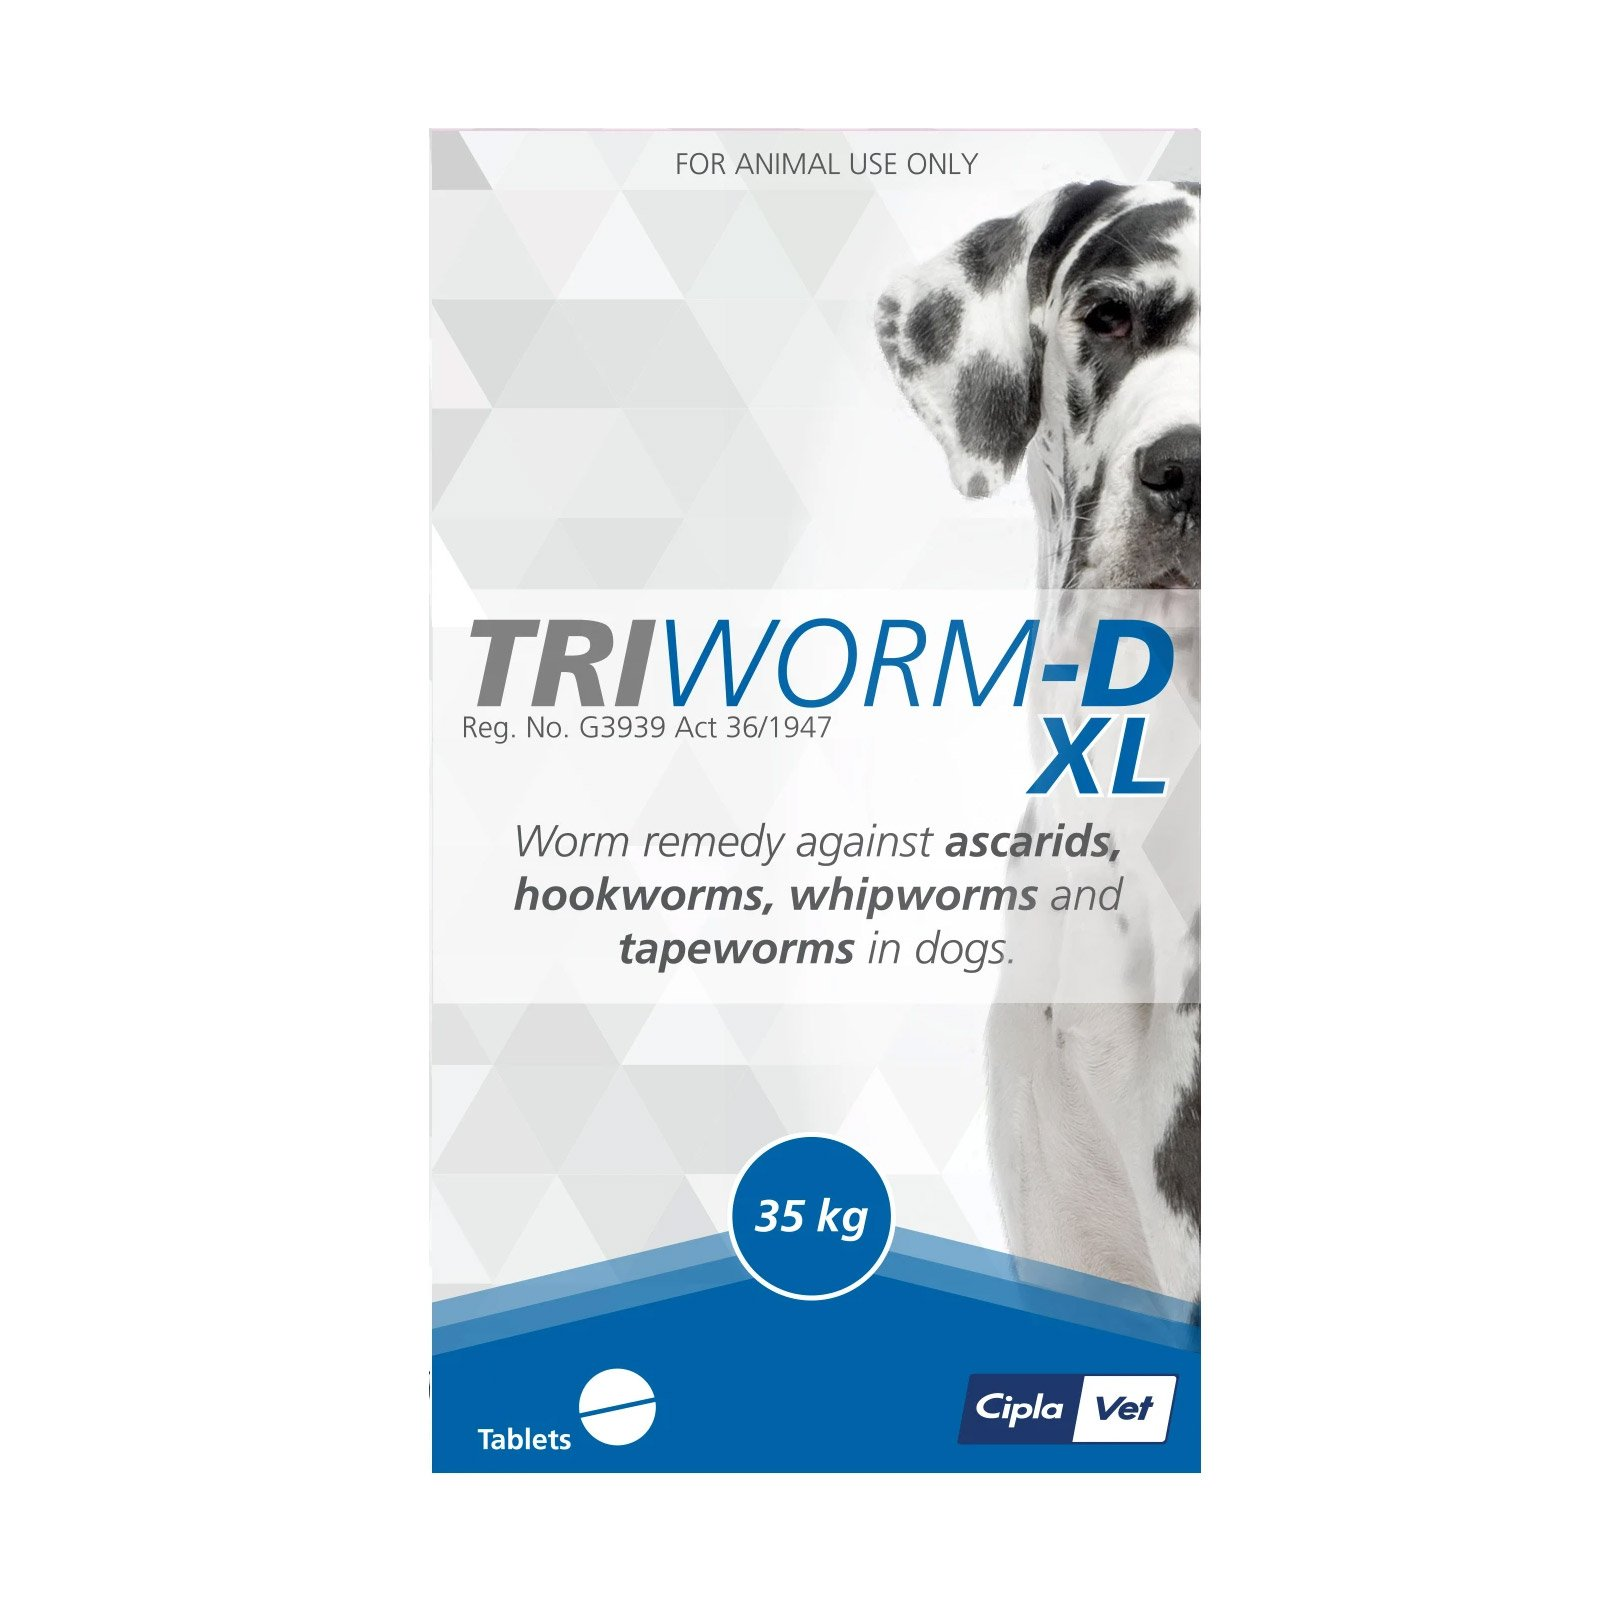 Triworm-D Dewormer For Large Dogs 35Kgs